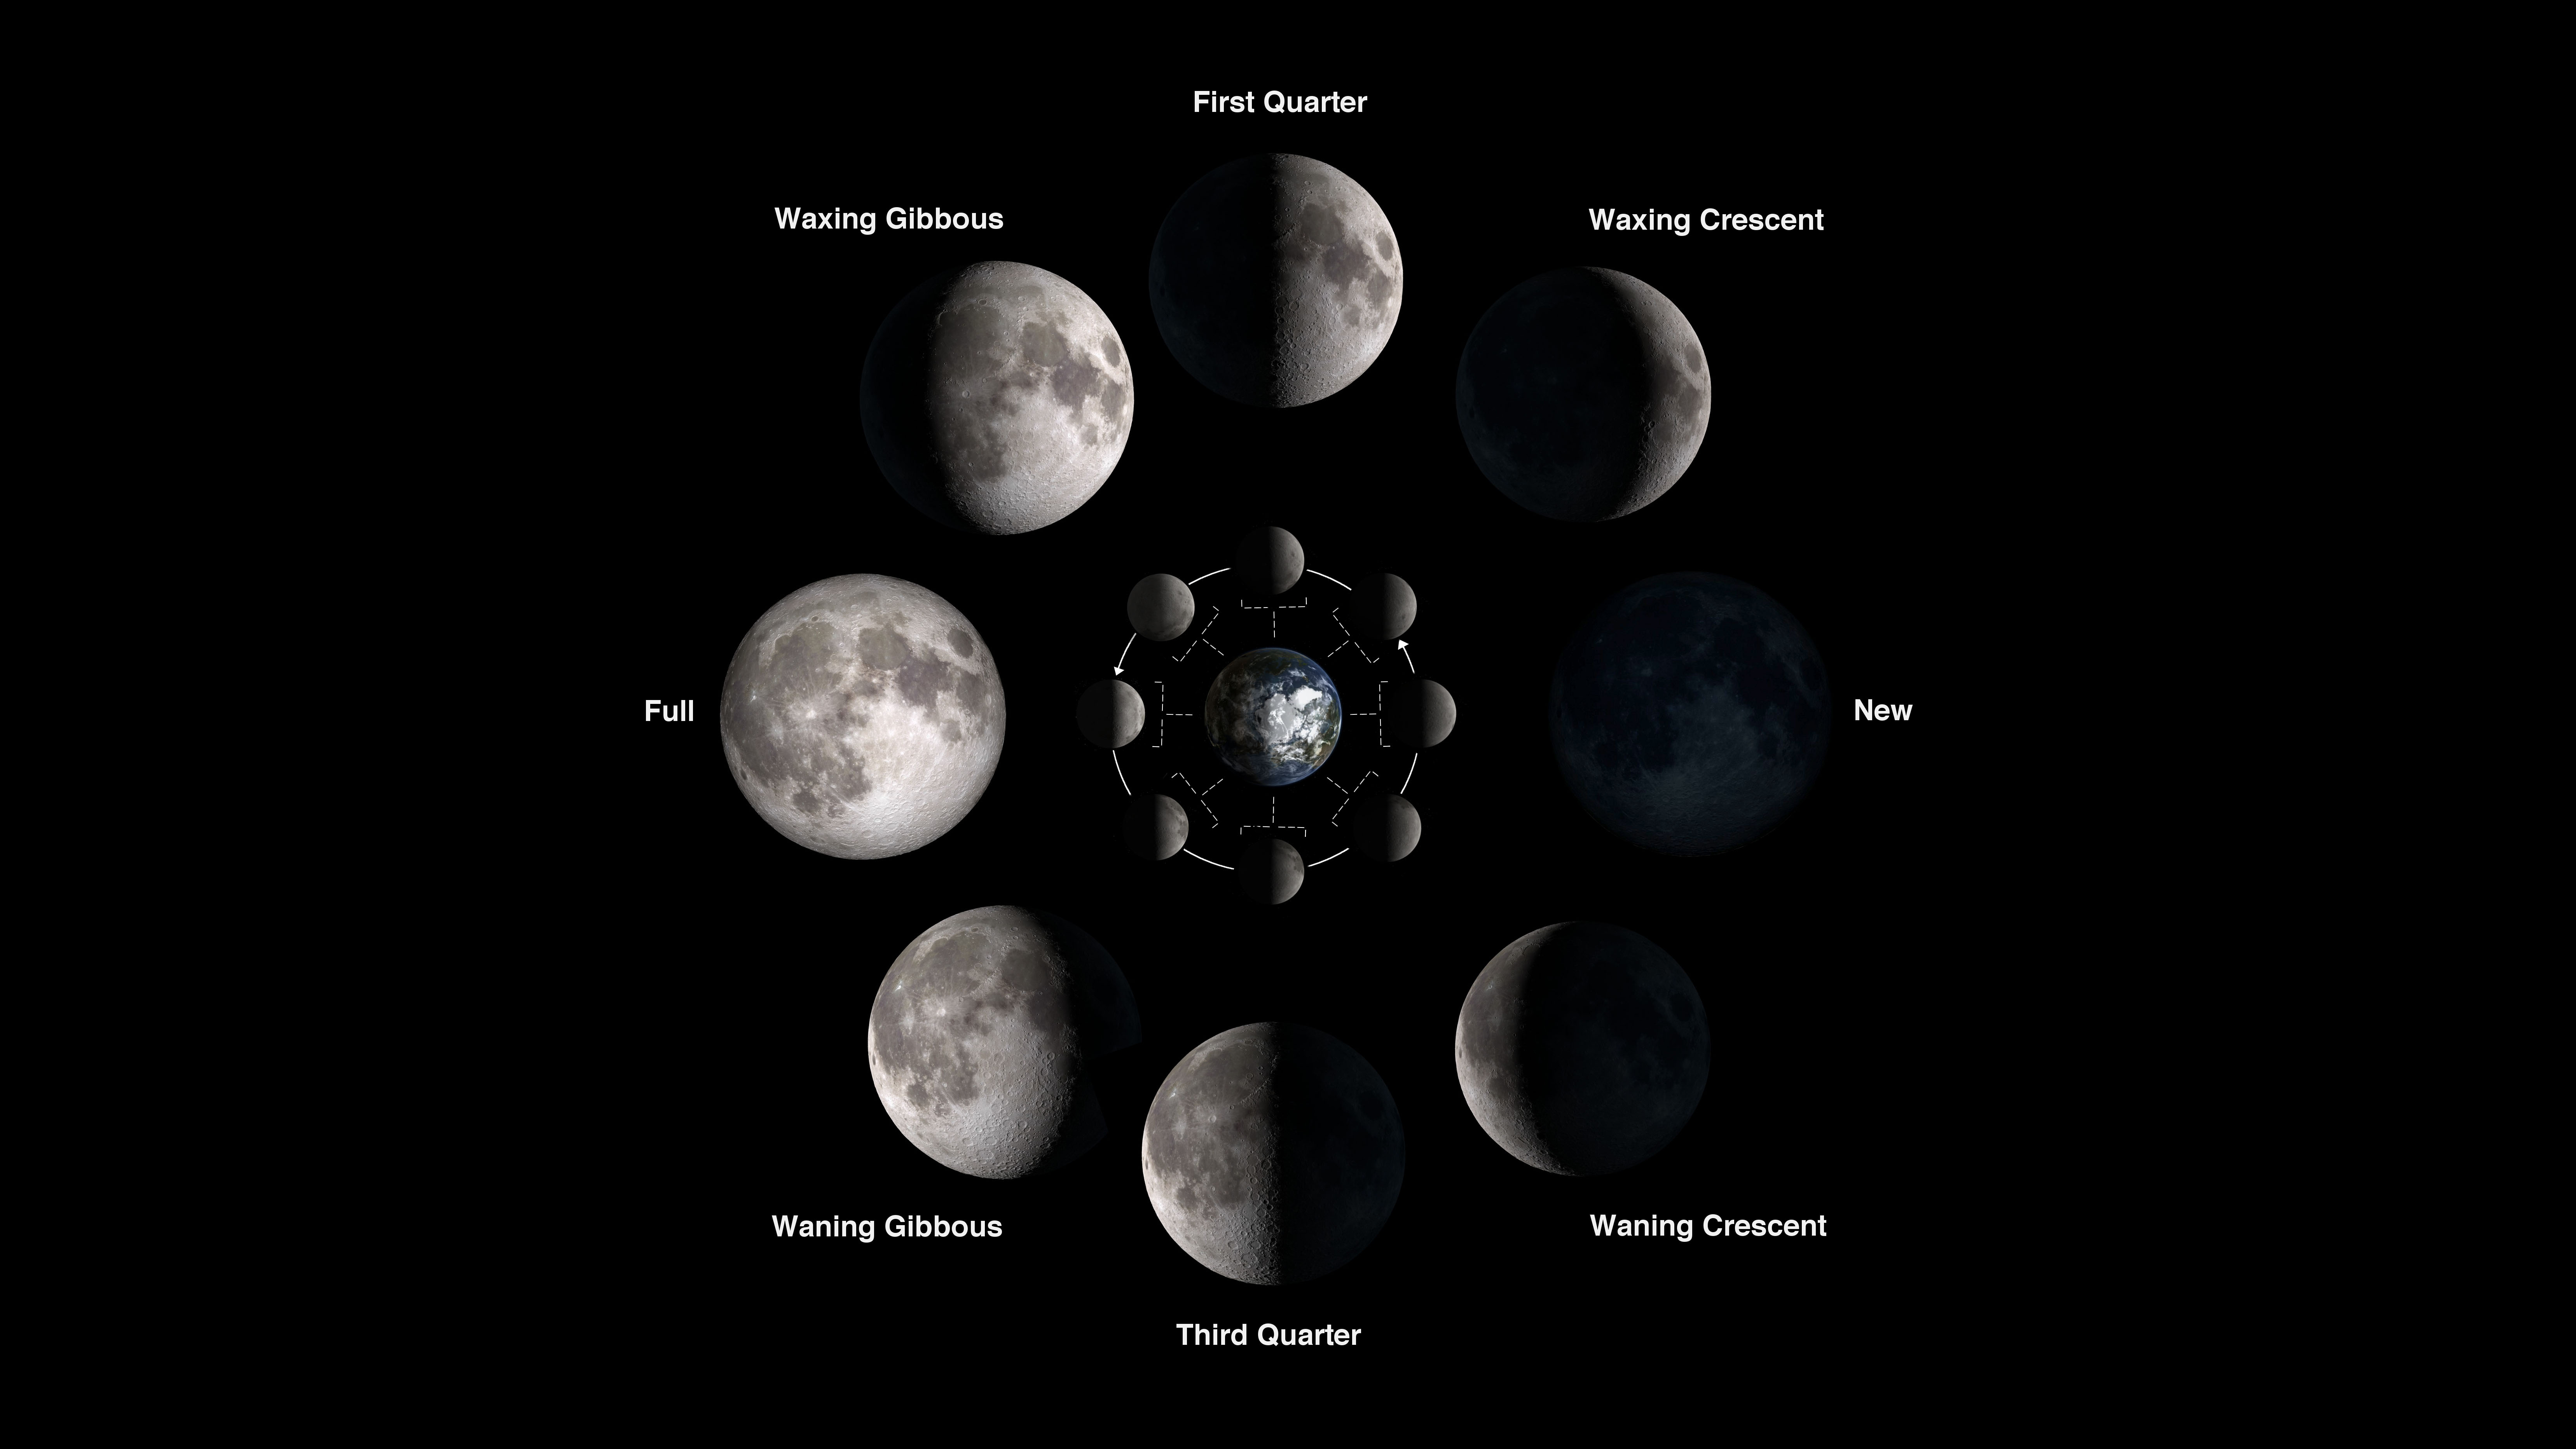 Images of the Moon during each of the eight moon phases are shown in order of their appearance as the Moon orbits Earth with the new moon in the 3-oclock position and the full moon in the 9-oclock position.